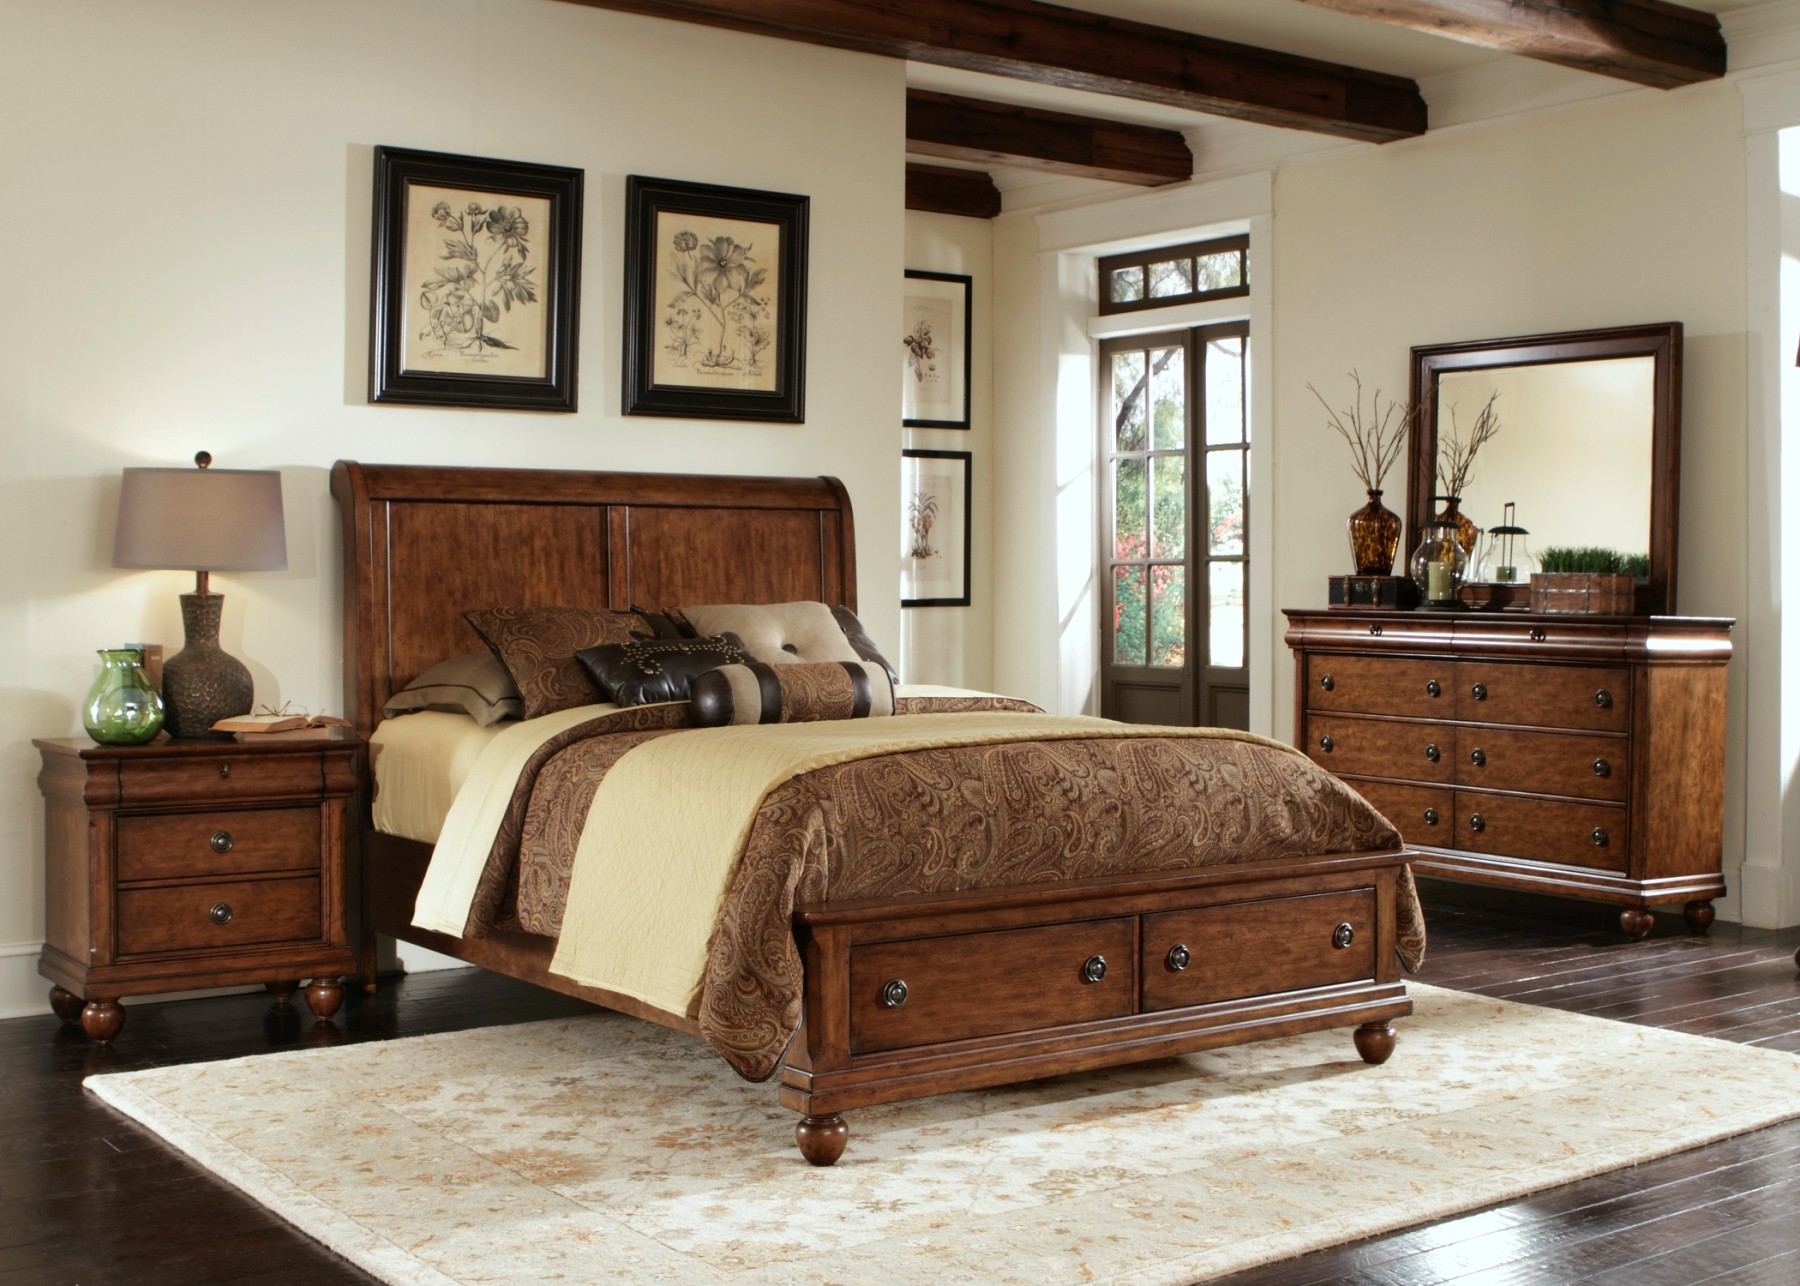 Rustic Traditions Sleigh Storage Bedroom Set from Liberty 589 BR QSB